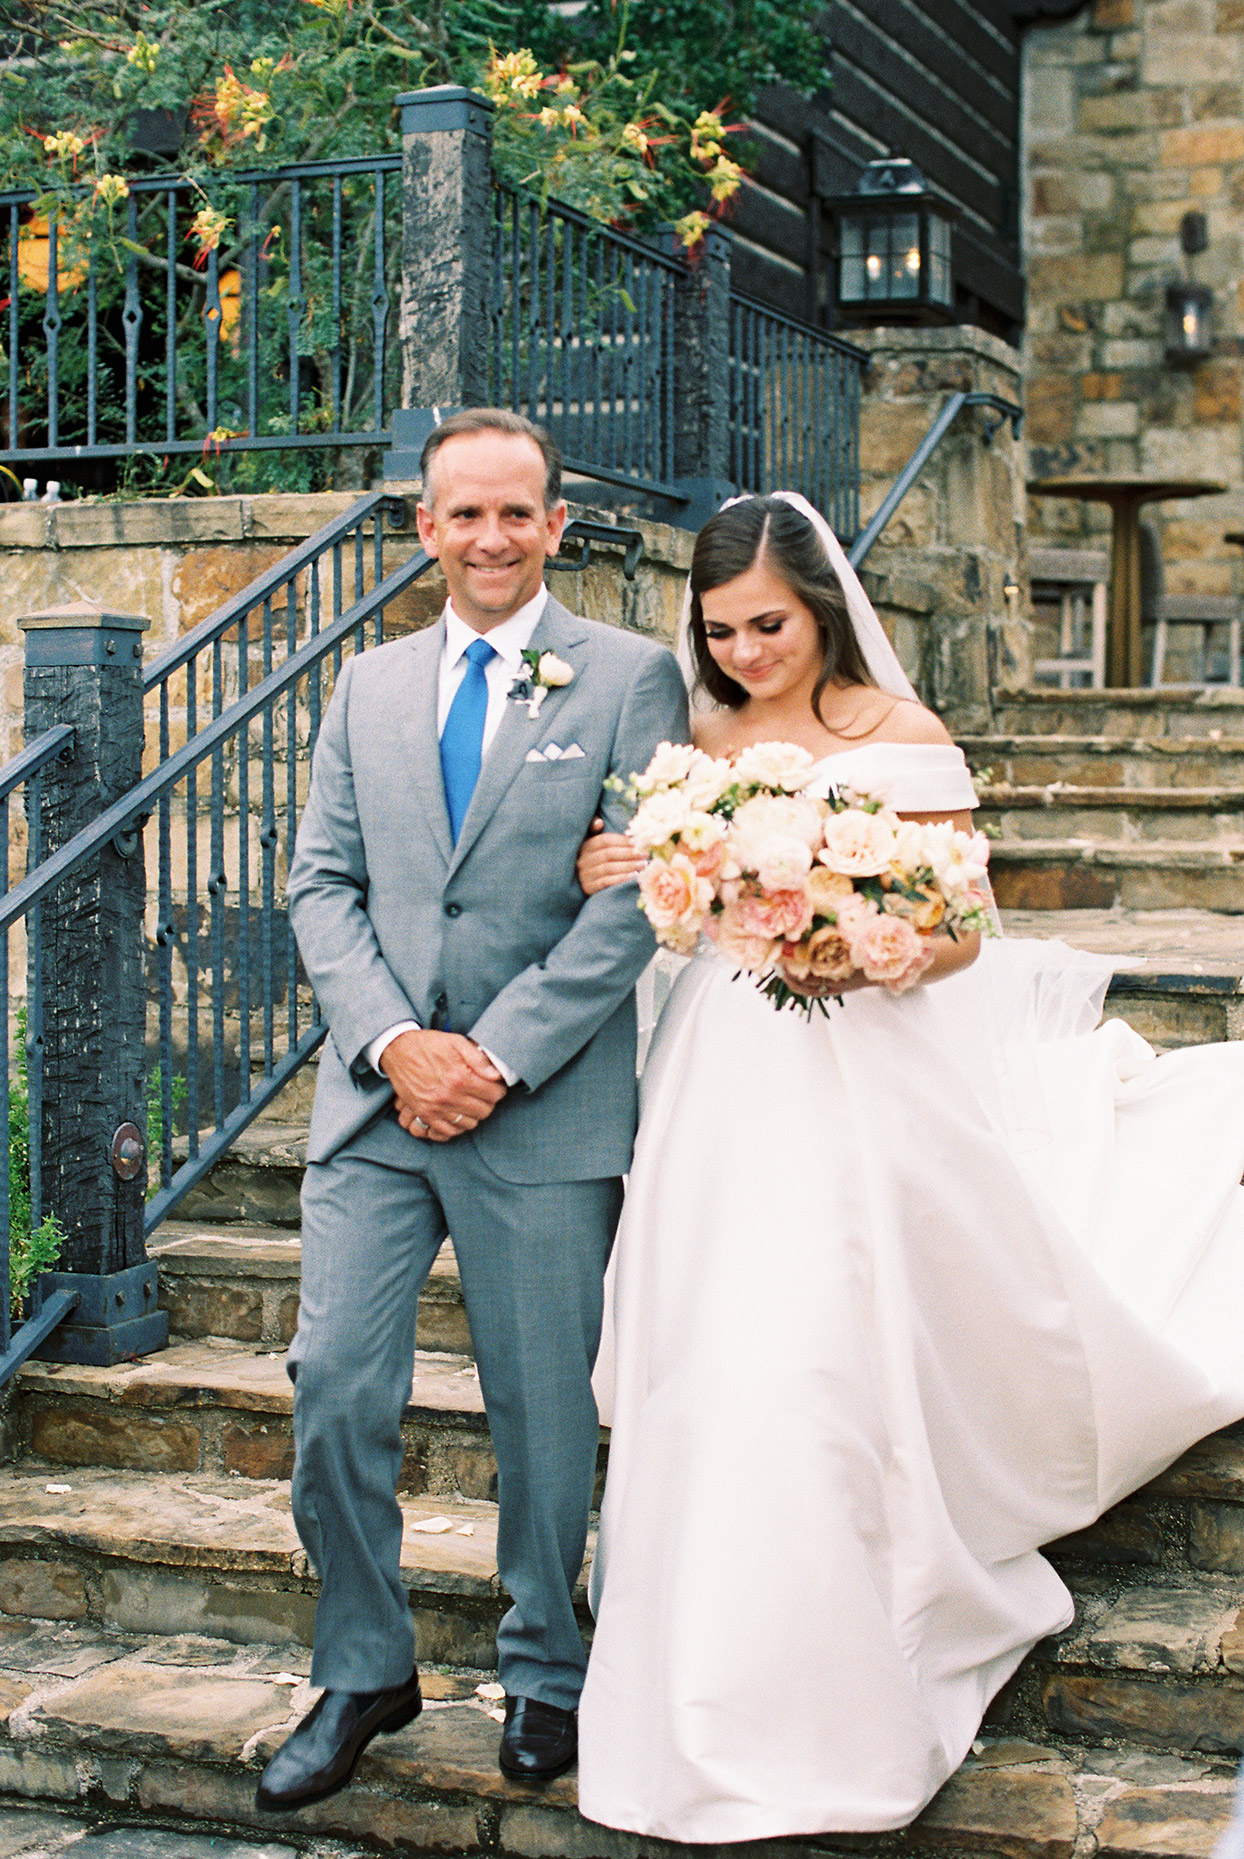 bride walking with her dad down the stairs holding his arm